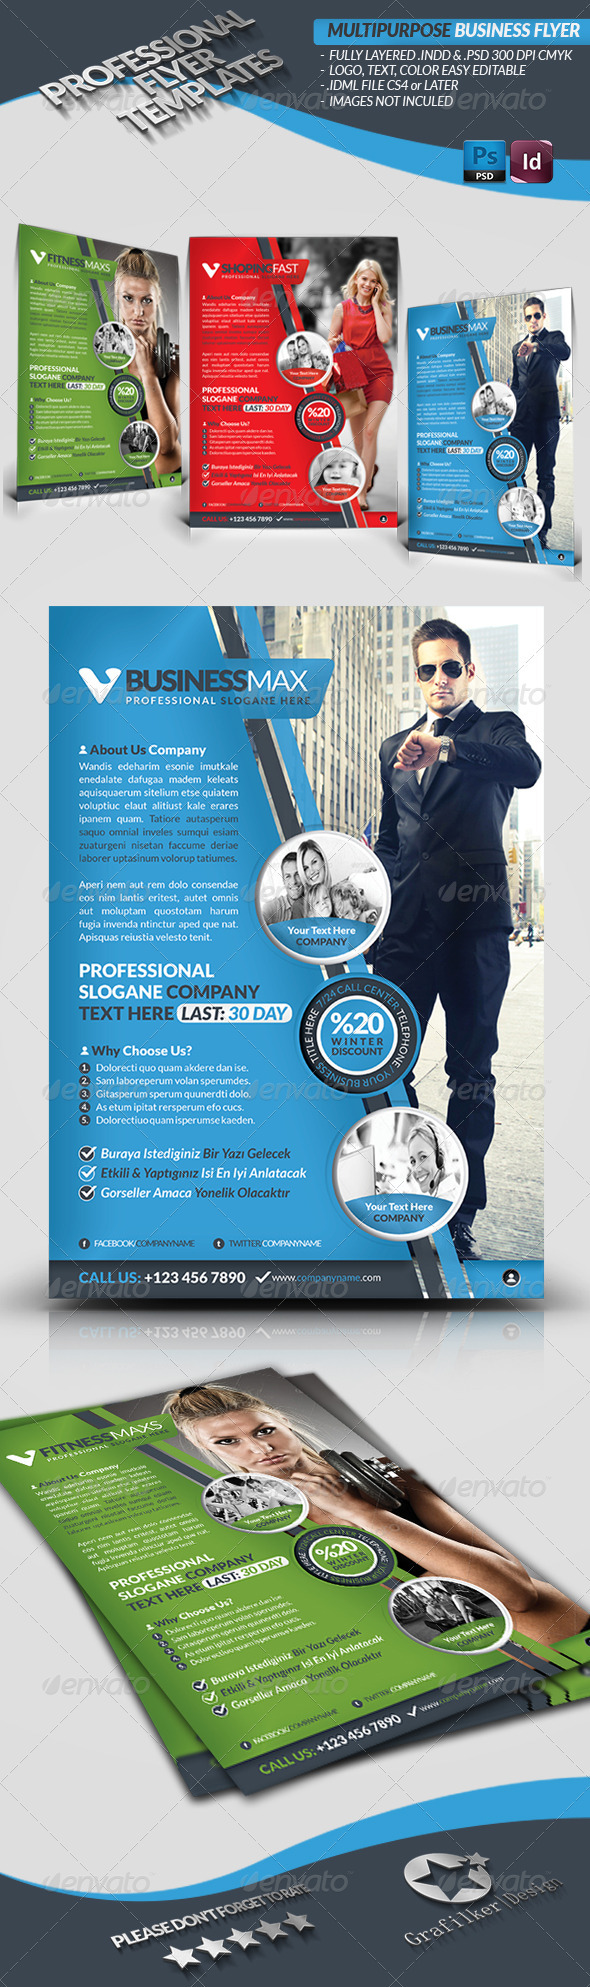 GraphicRiver Multipurpose Business Flyer 3840029